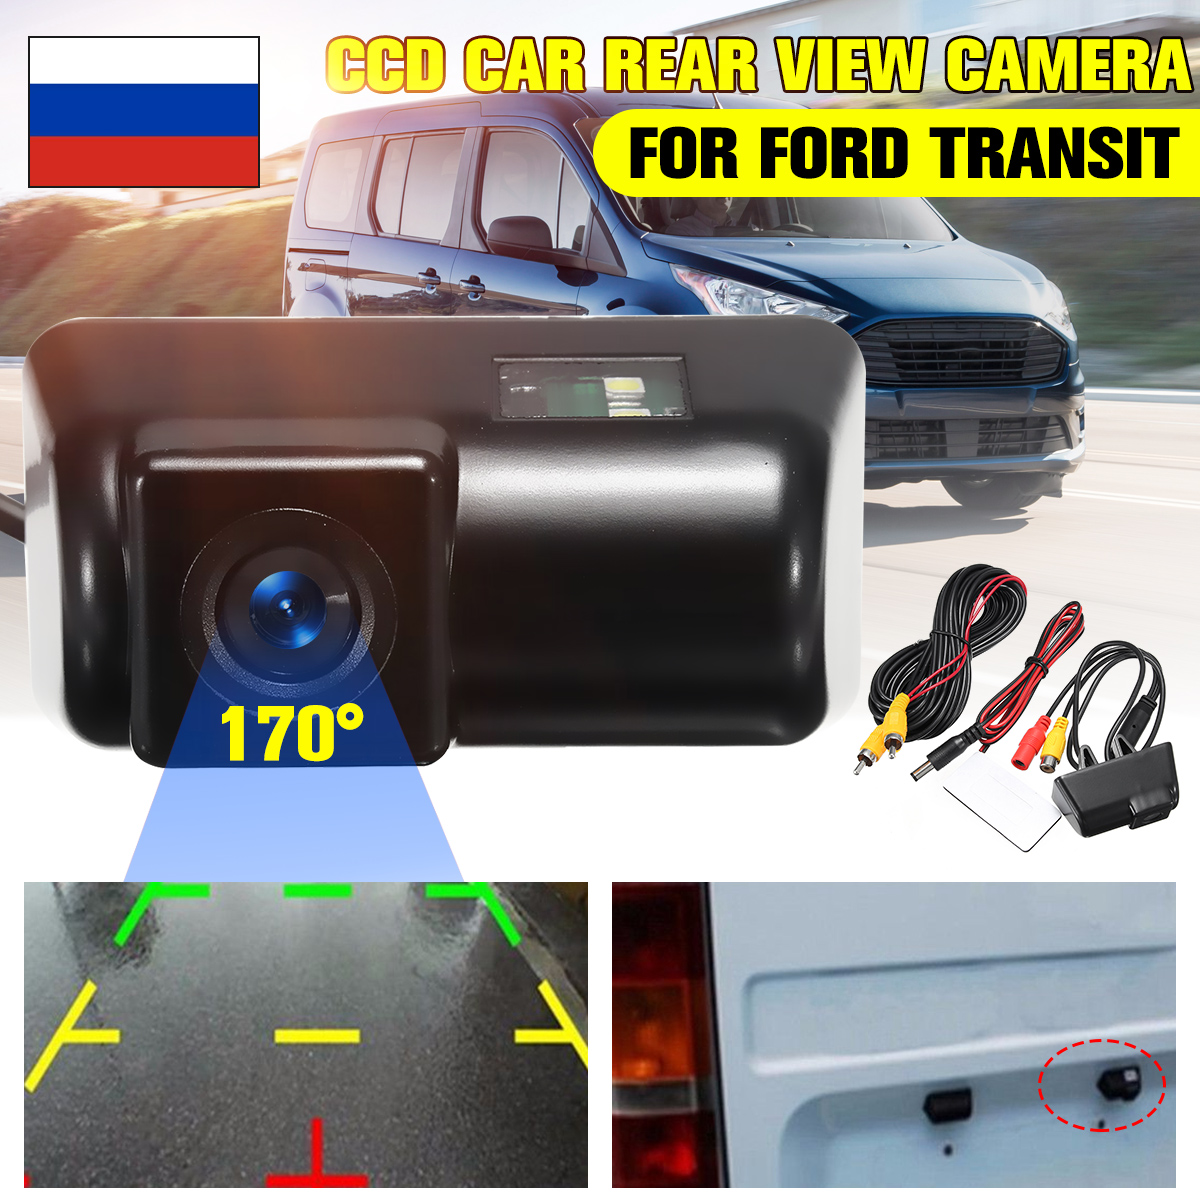 HD CCD Auto Car Reverse Rear View Camera License Plate Waterproof Parking For Ford Transit /Transit Connect All Years Models